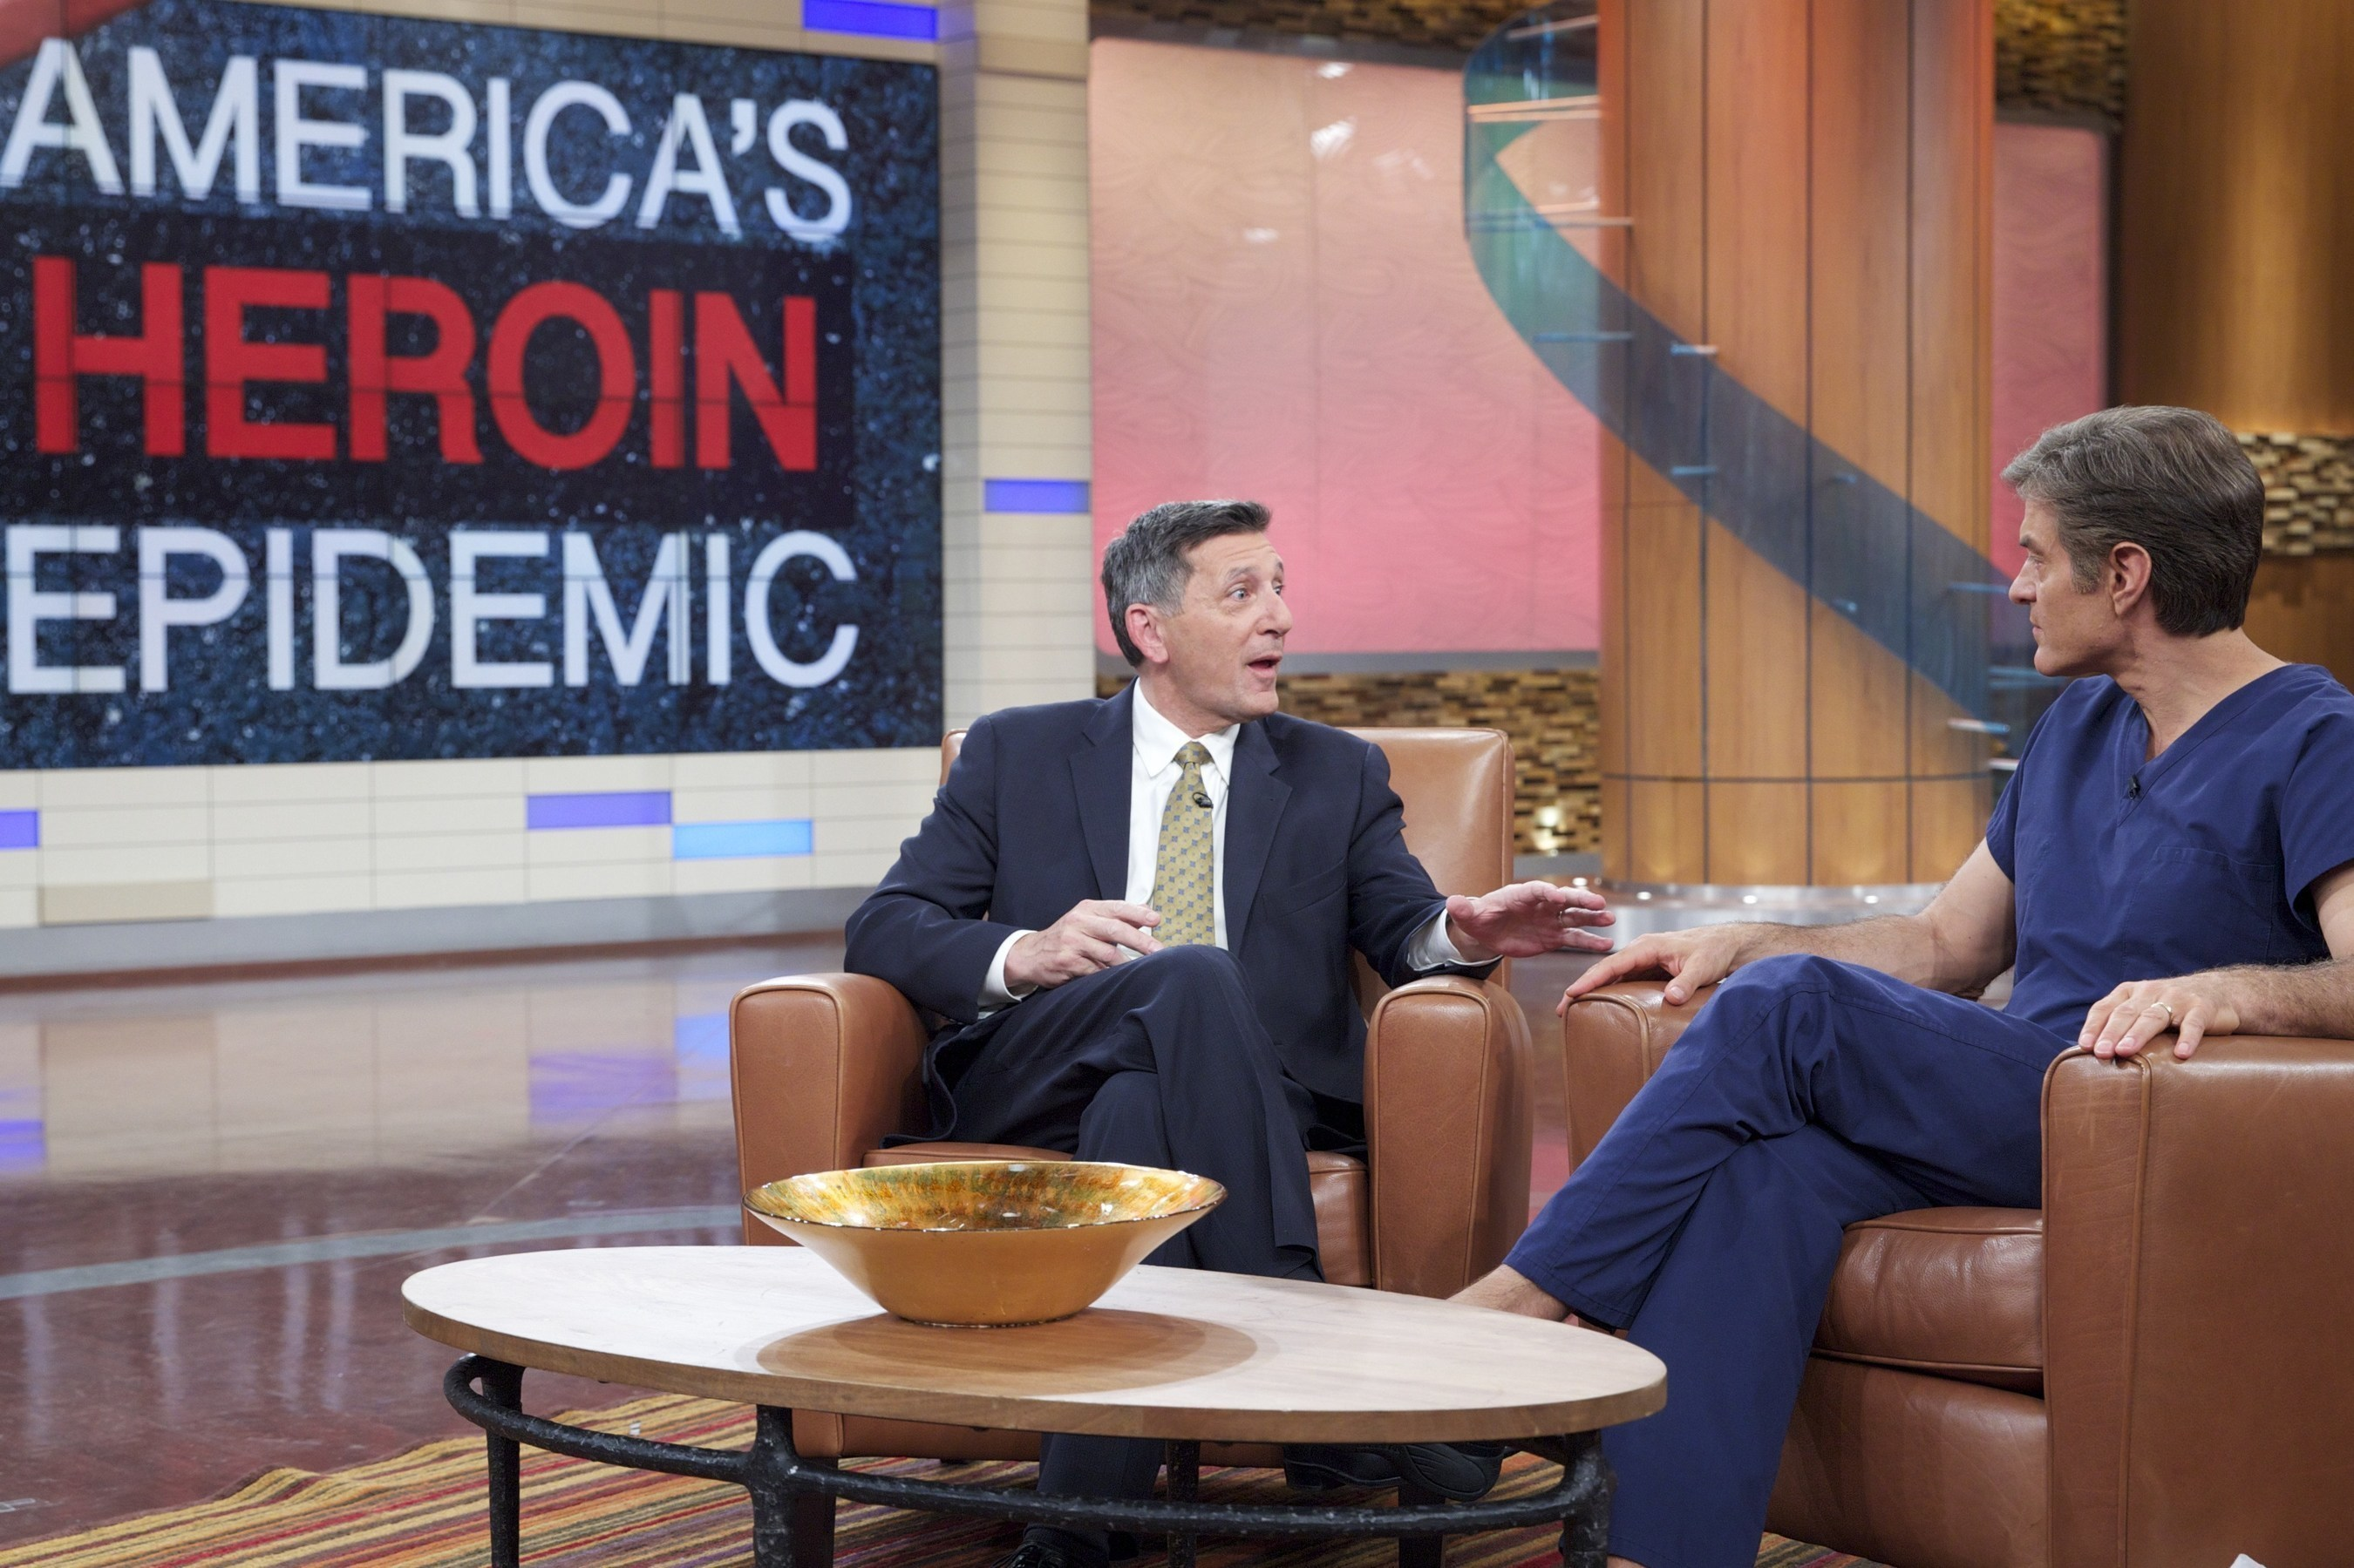 The Dr. Oz Show Explores America's Heroin Epidemic With White House Director Of National Drug Control Policy Michael Bottacelli